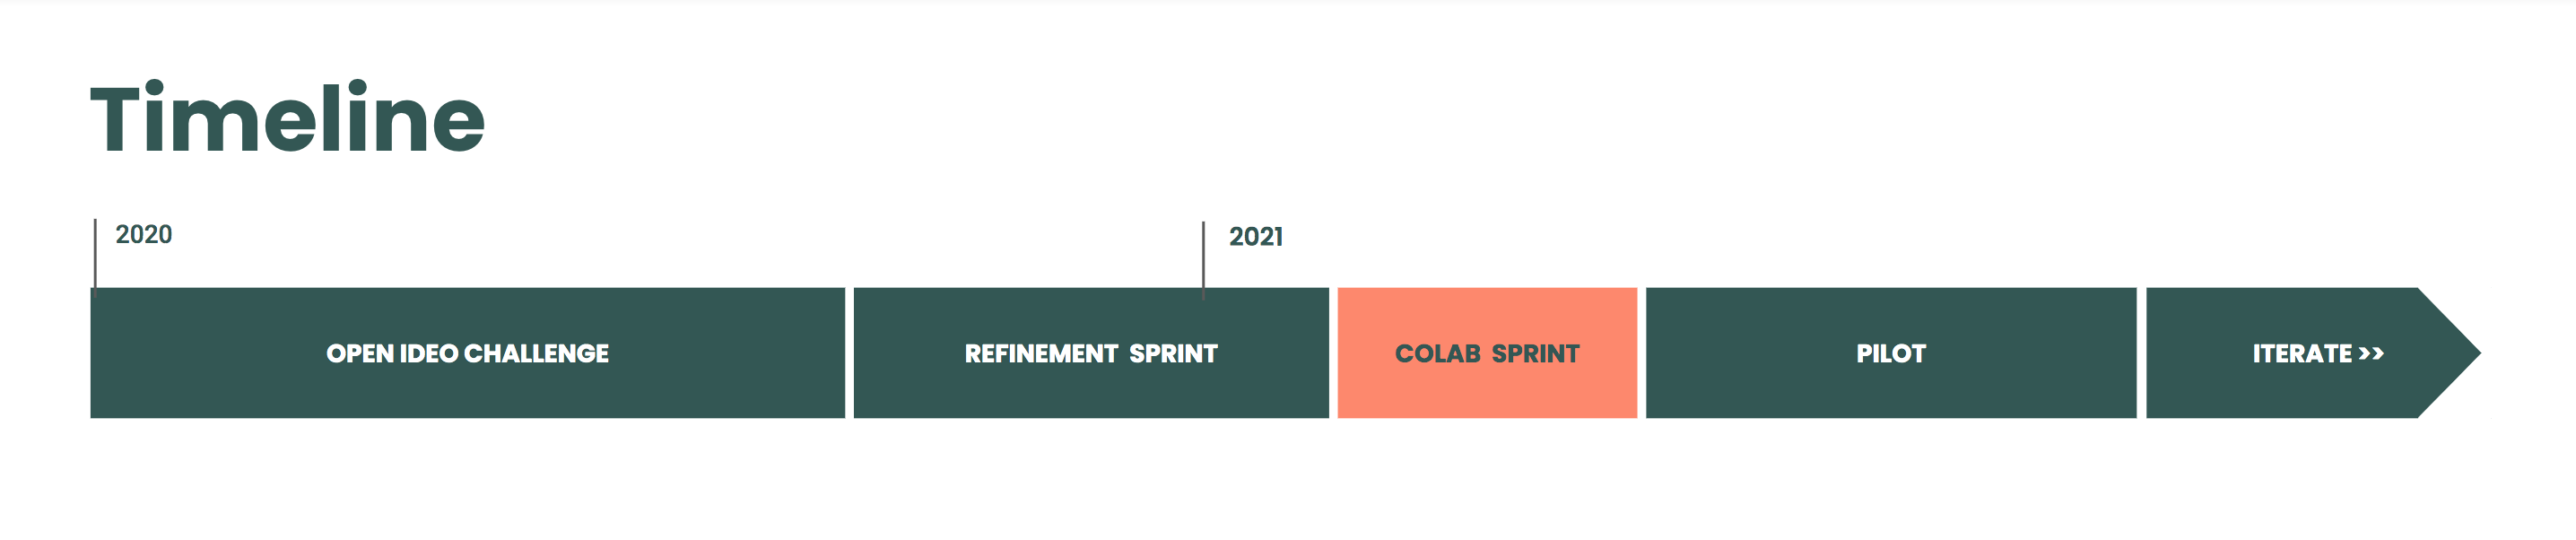 Timeline. The year 2020 included the OpenIDEO Challenge and Refinement Sprint. The year 2021 includes the CoLab Sprint, then Pilot Phase, then ongoing Iteration Phases.